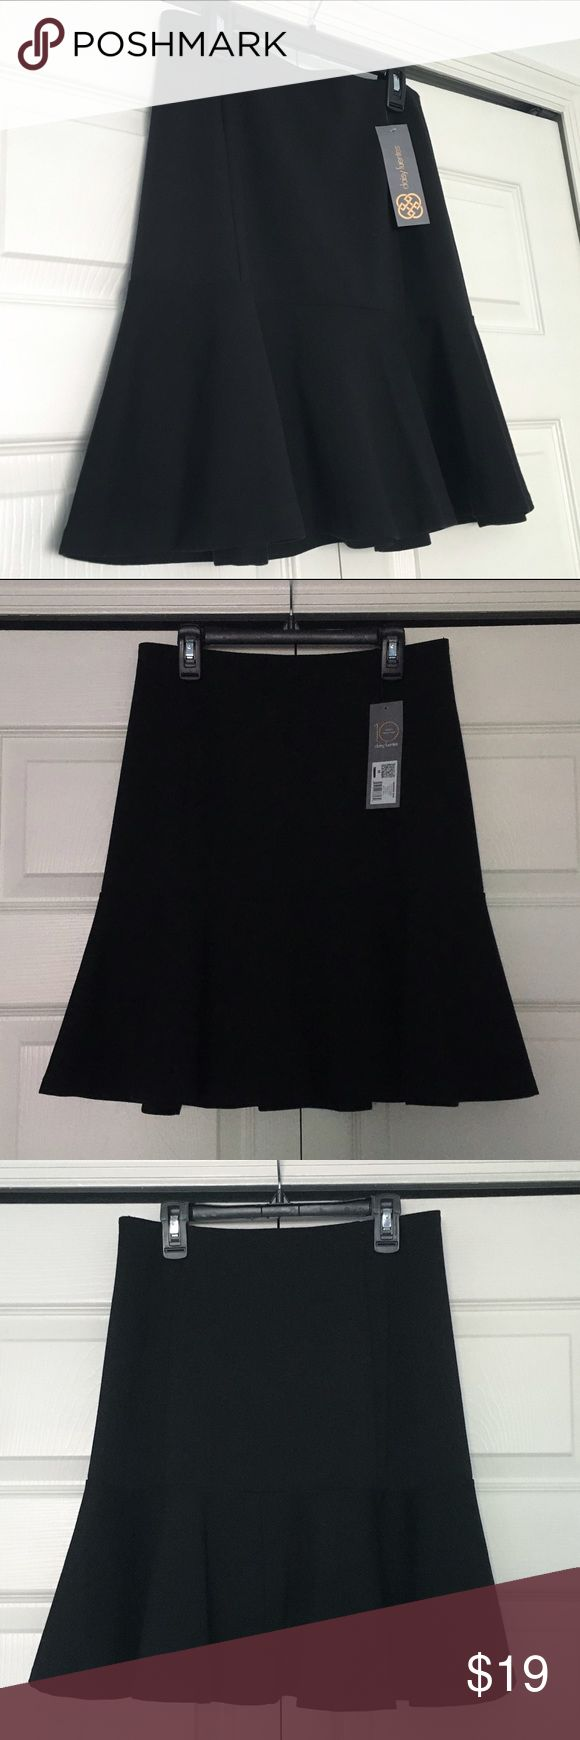 "Daisy Fuentes black skirt Daisy Fuentes black skirt. NWT. Tag reads size M but the sewn on label reads size S. 14"" measured across elastic waist band. Daisy Fuentes Skirts"